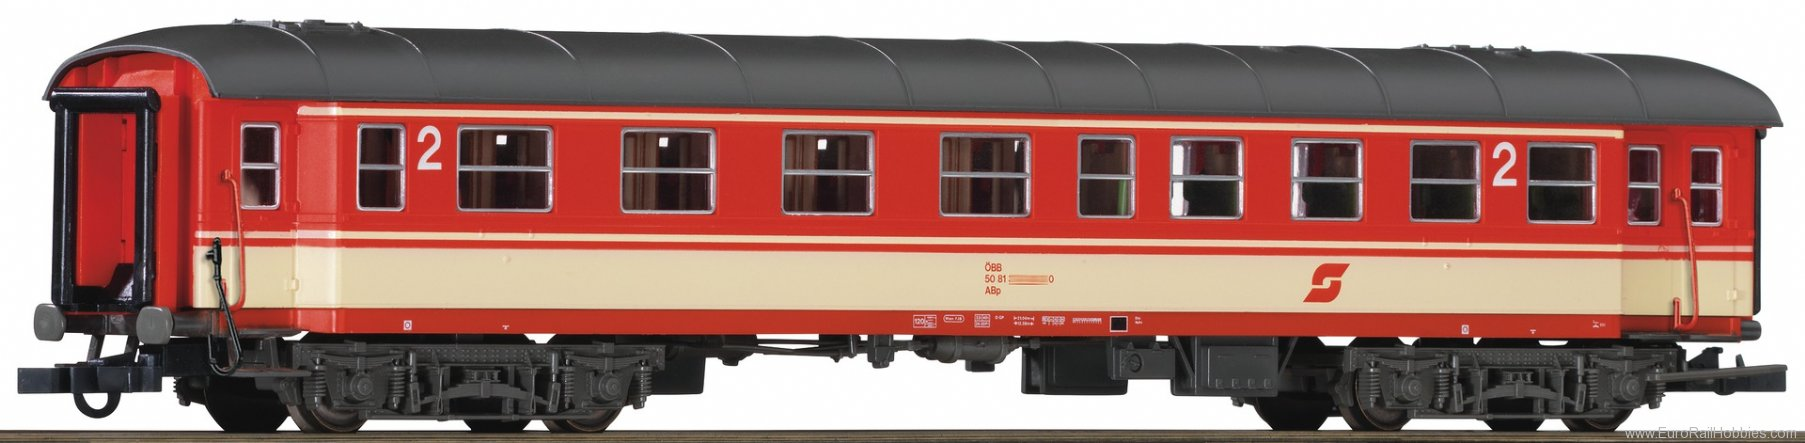 Roco 64655 2nd class fast train coach, OBB